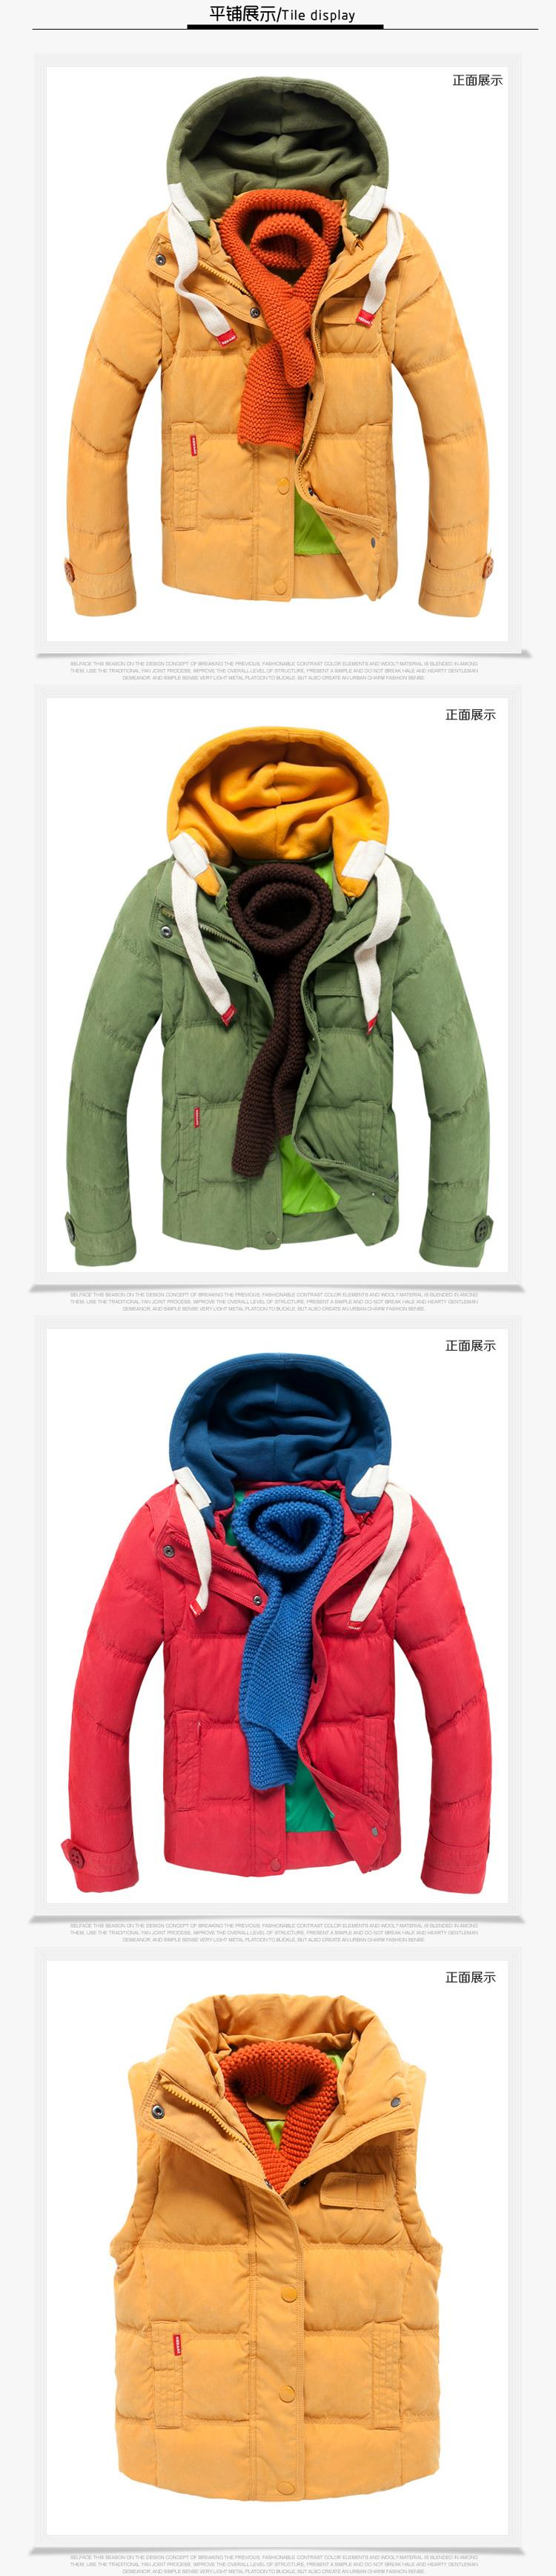 0be88be7e2b 2018 Winter Children Jackets Boys And Girls Down Coat 2 10 Years ...